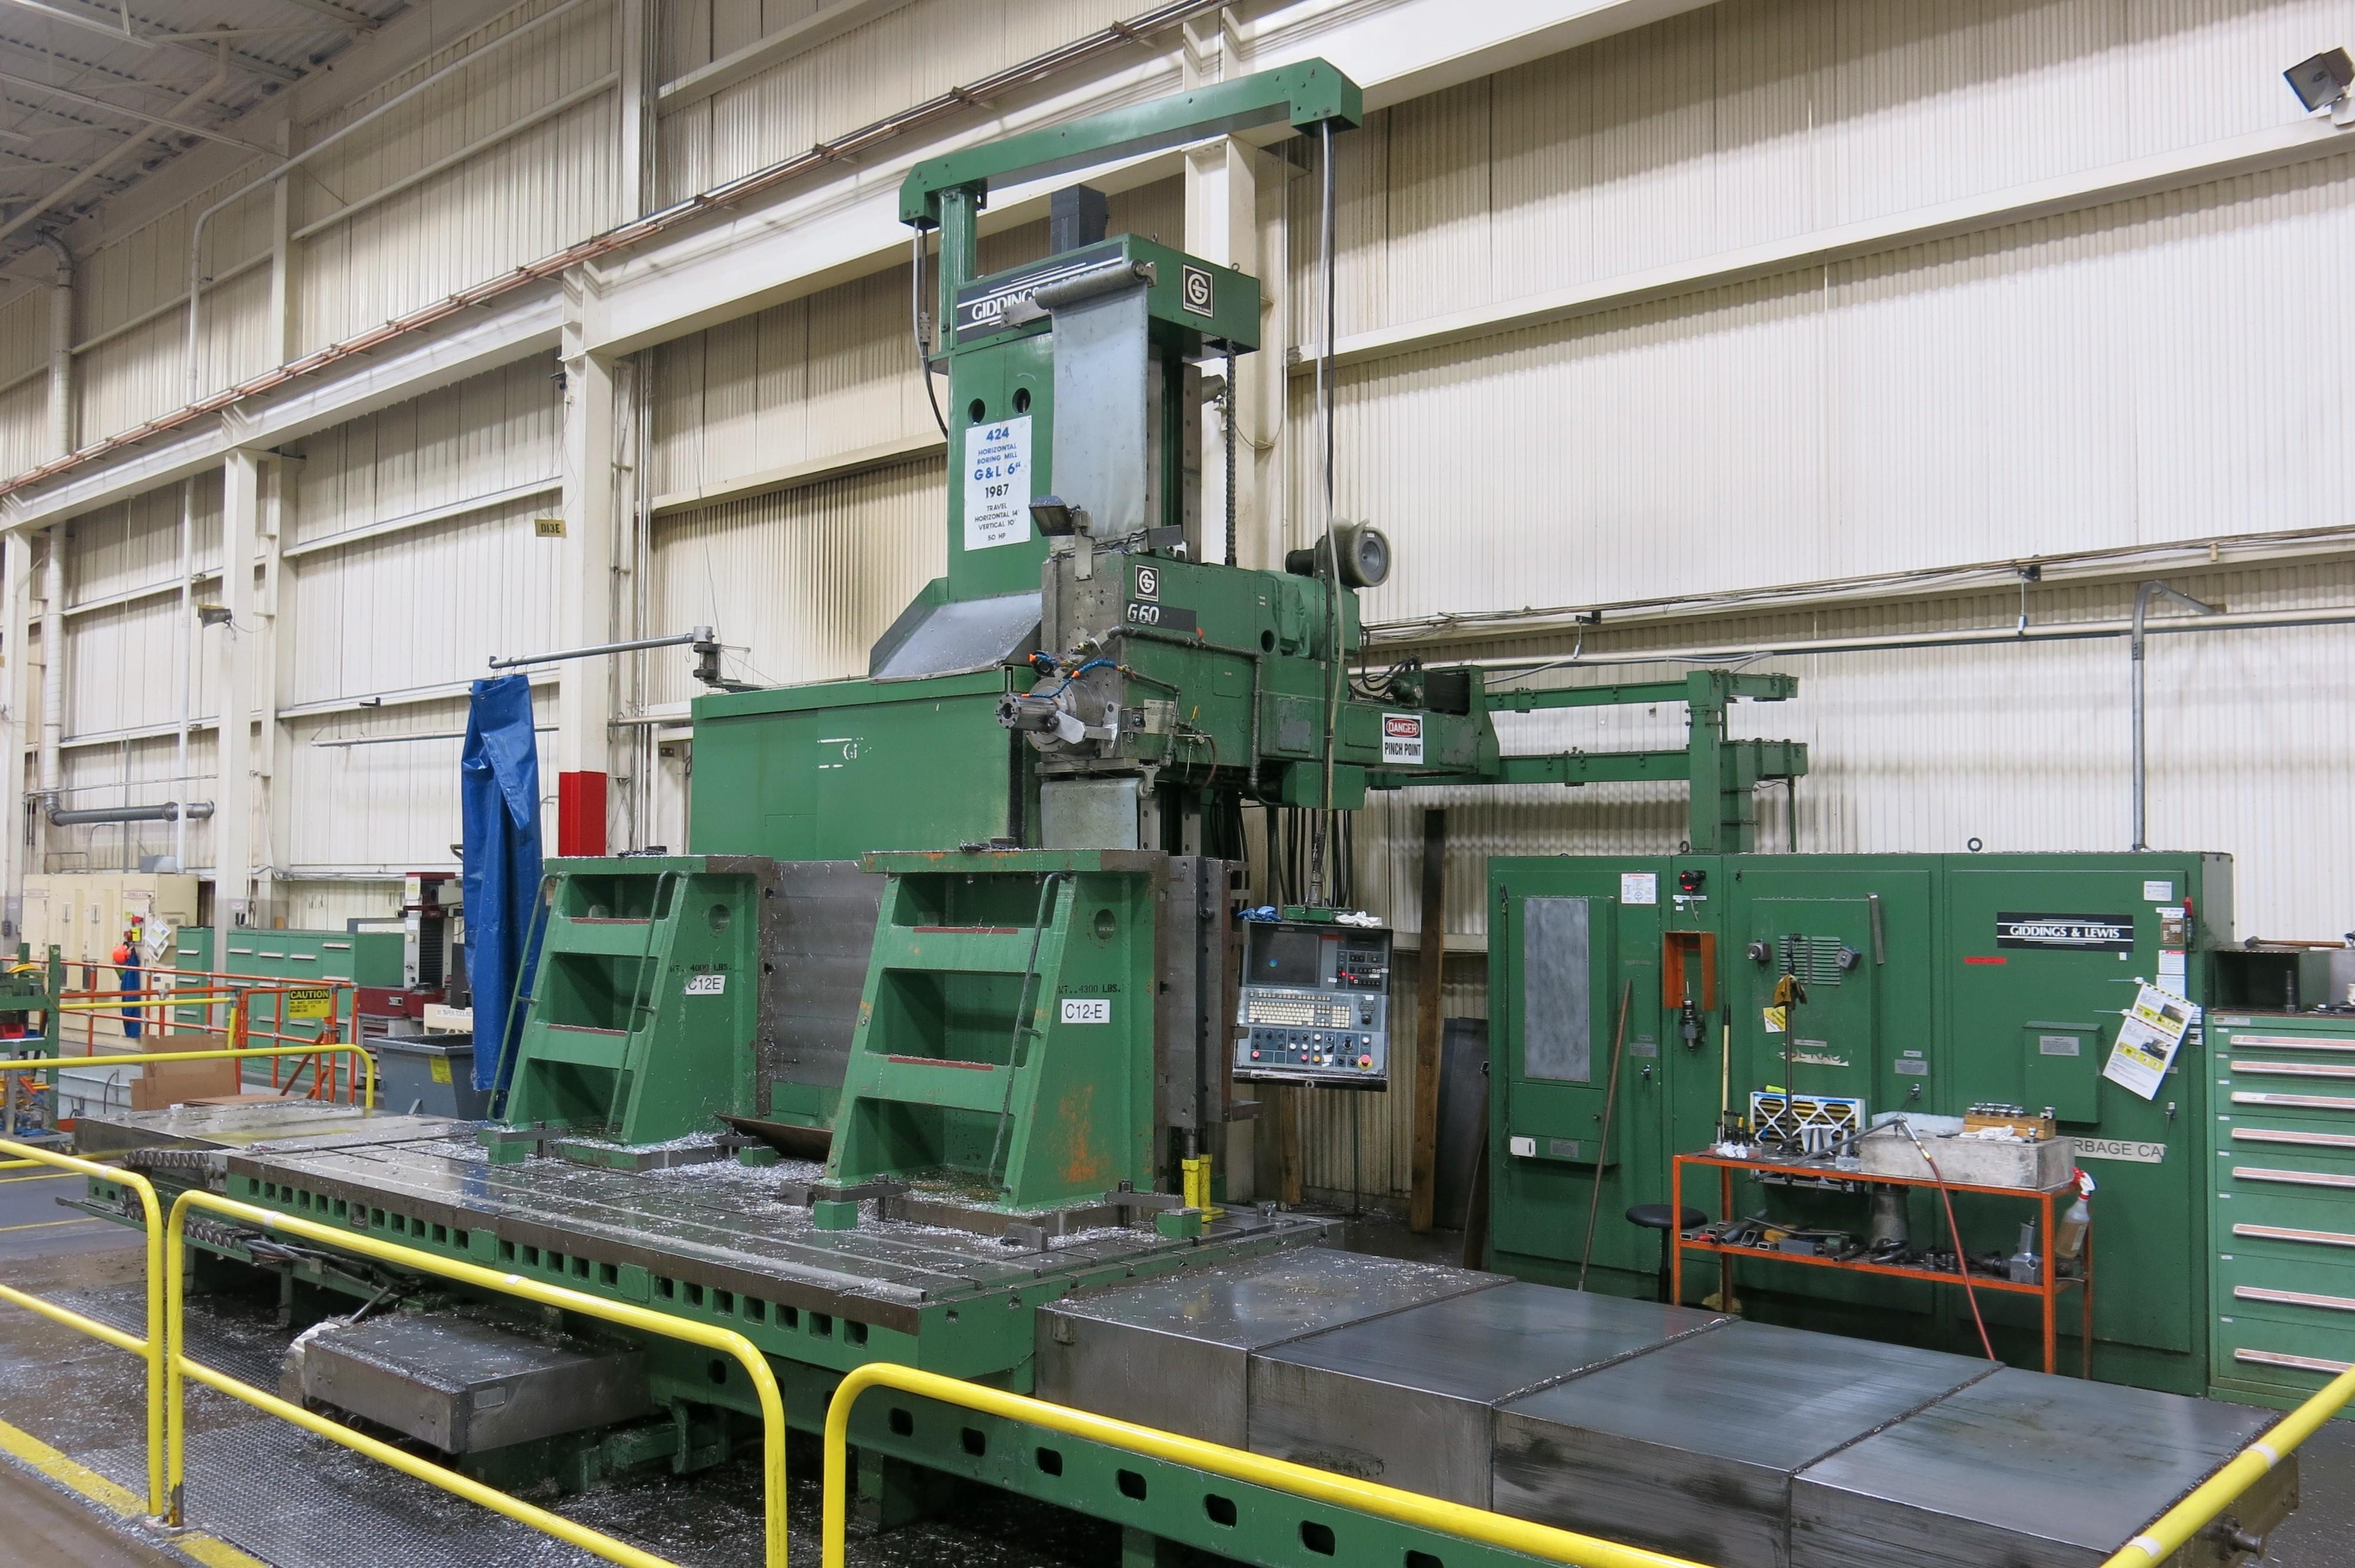 """6"""" Giddings & Lewis Model G60-T CNC Table Type Horizontal Boring Mill, Hard Ways, 2500 RPM, 4th Axis Contouring Capable, 60 ATC, 50 HP, 1987 (G&L 8000H-Recontrolled 2005)"""